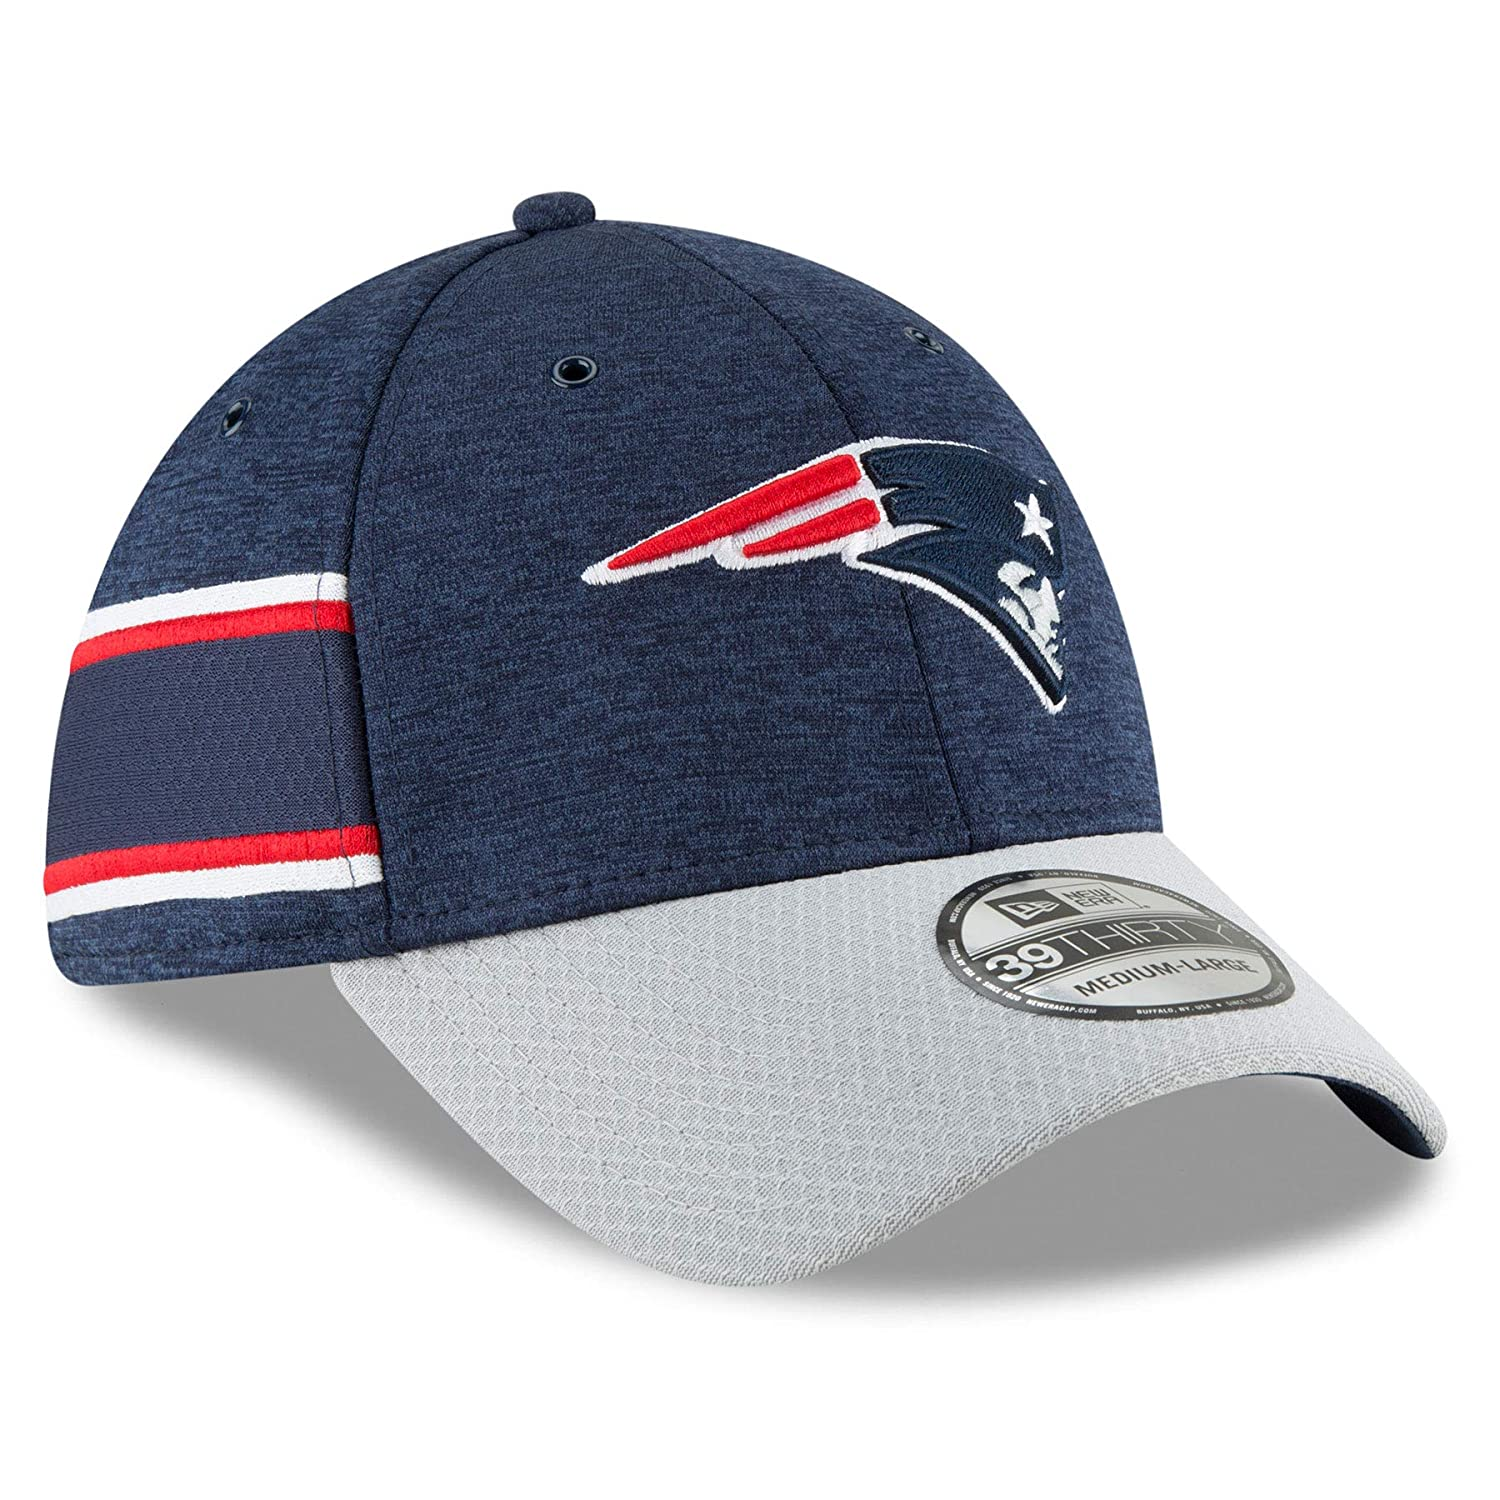 4673f7f89336b ... inexpensive amazon new era 2018 39thirty nfl new england patriots  sideline home hat cap 11763369 clothing